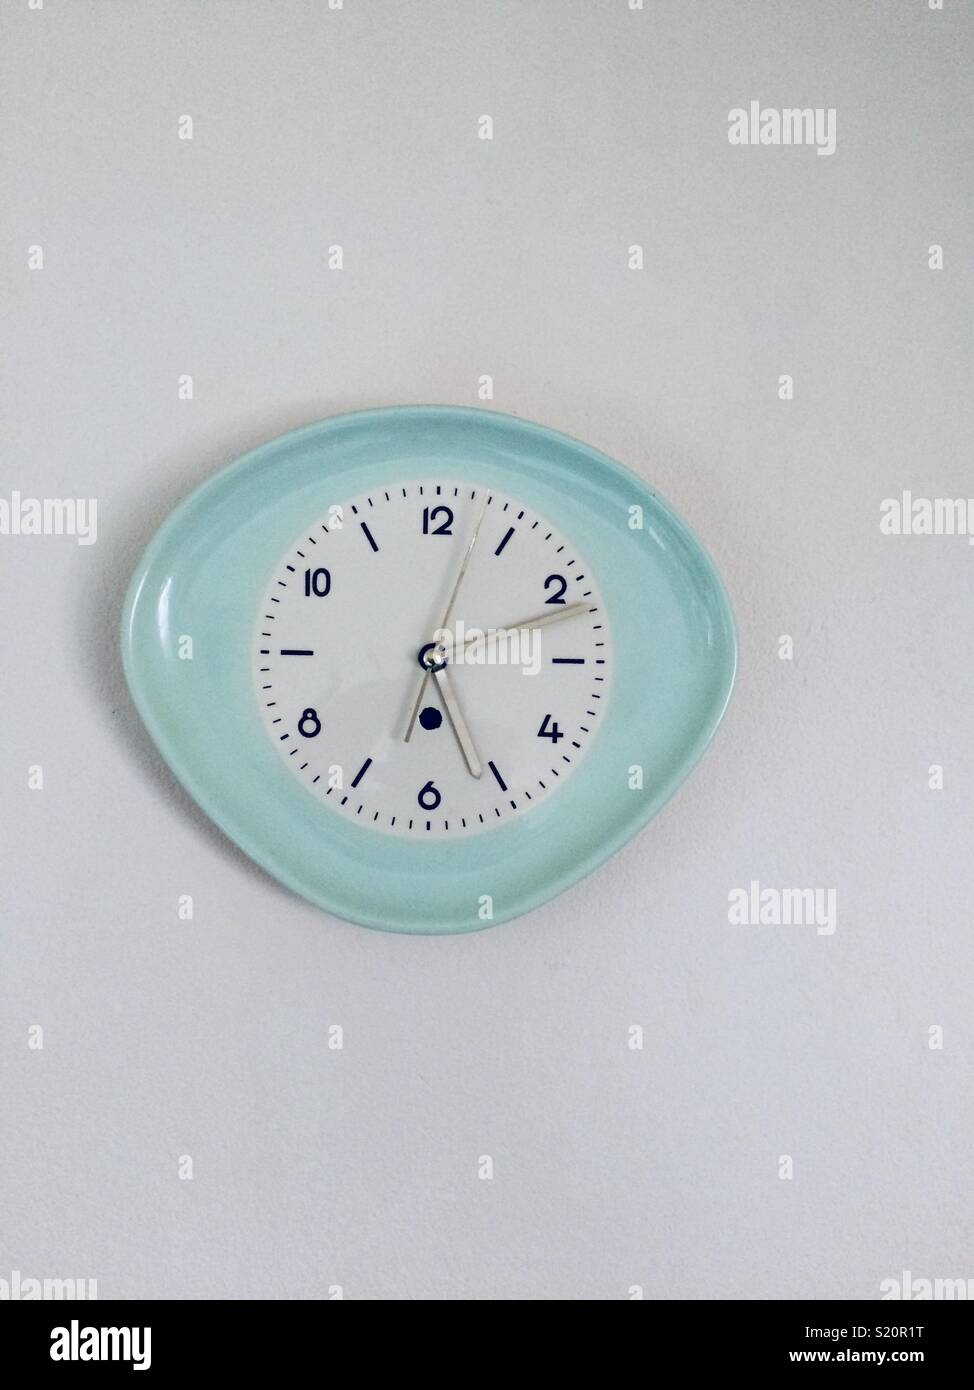 A vintage wall clock - Stock Image